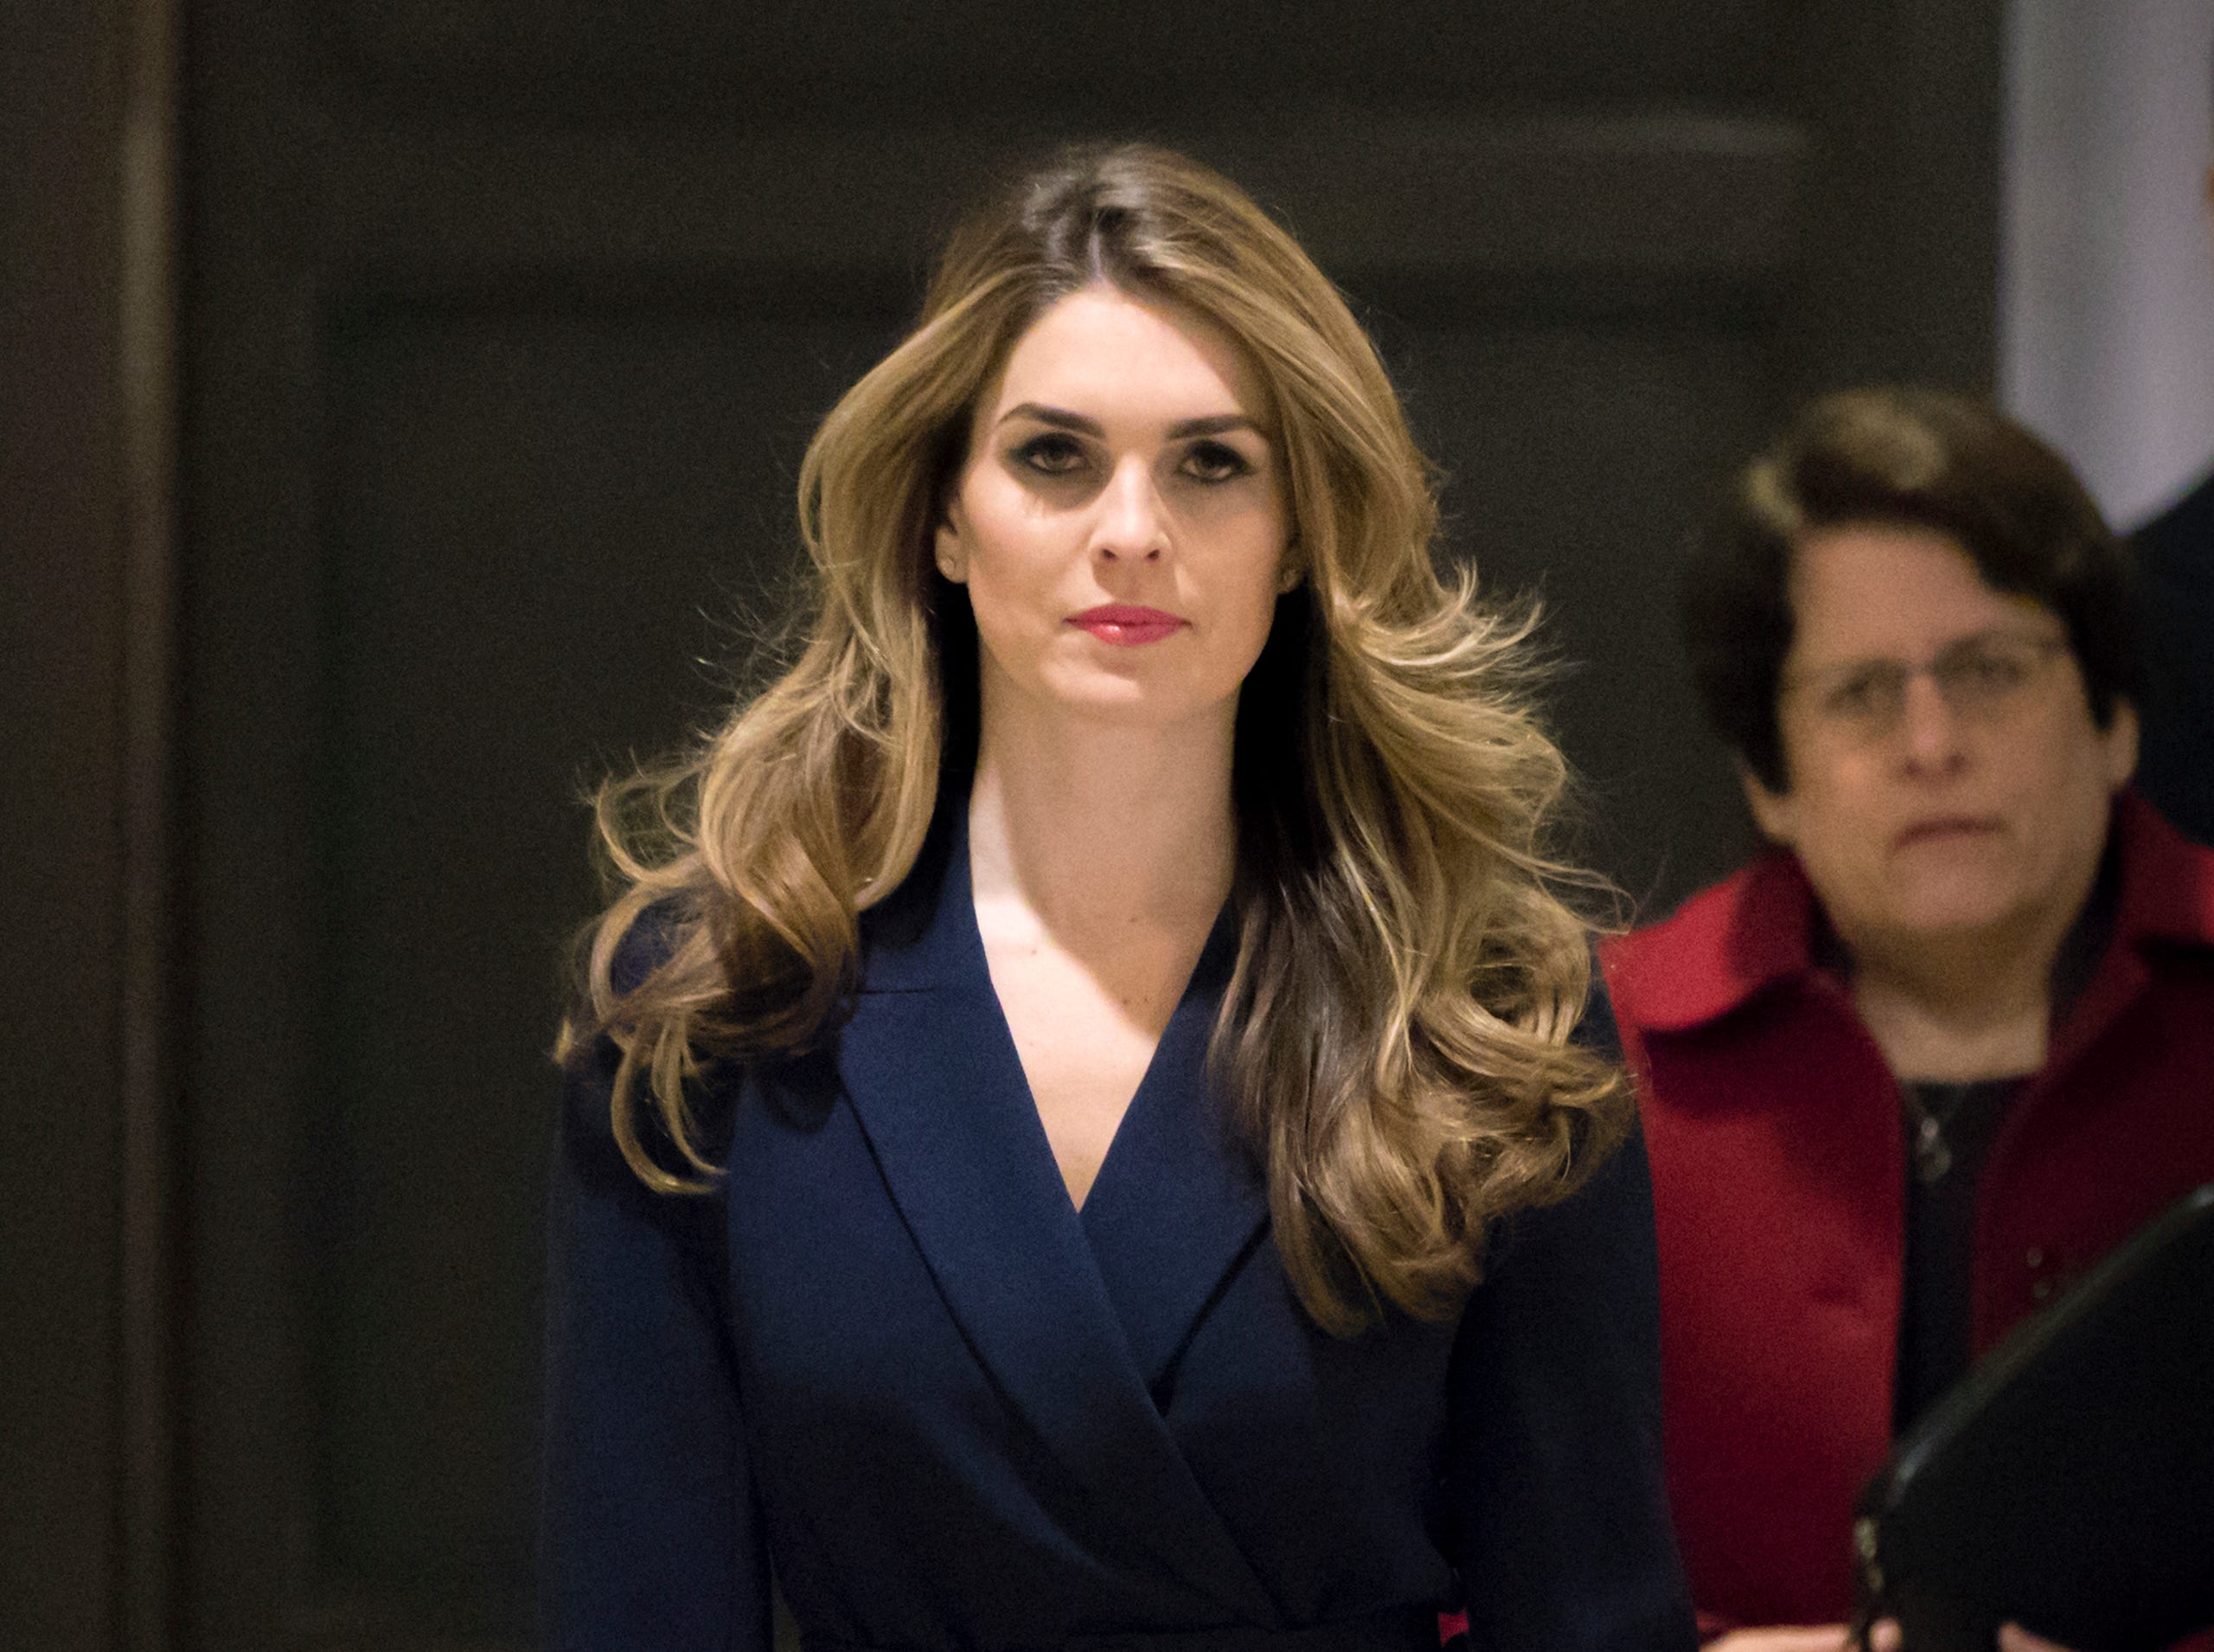 In this Feb. 27 2018 photo, White House Communications Director Hope Hicks, one of President Trump's closest aides and advisers, arrives to meet behind closed doors with the House Intelligence Committee, at the Capitol. Hicks announced her resignation Feb. 28, 2018. The news comes a day after Hicks was interviewed for nine hours by the panel investigating Russia interference in the 2016 election and contact between Trump's campaign and Russia.